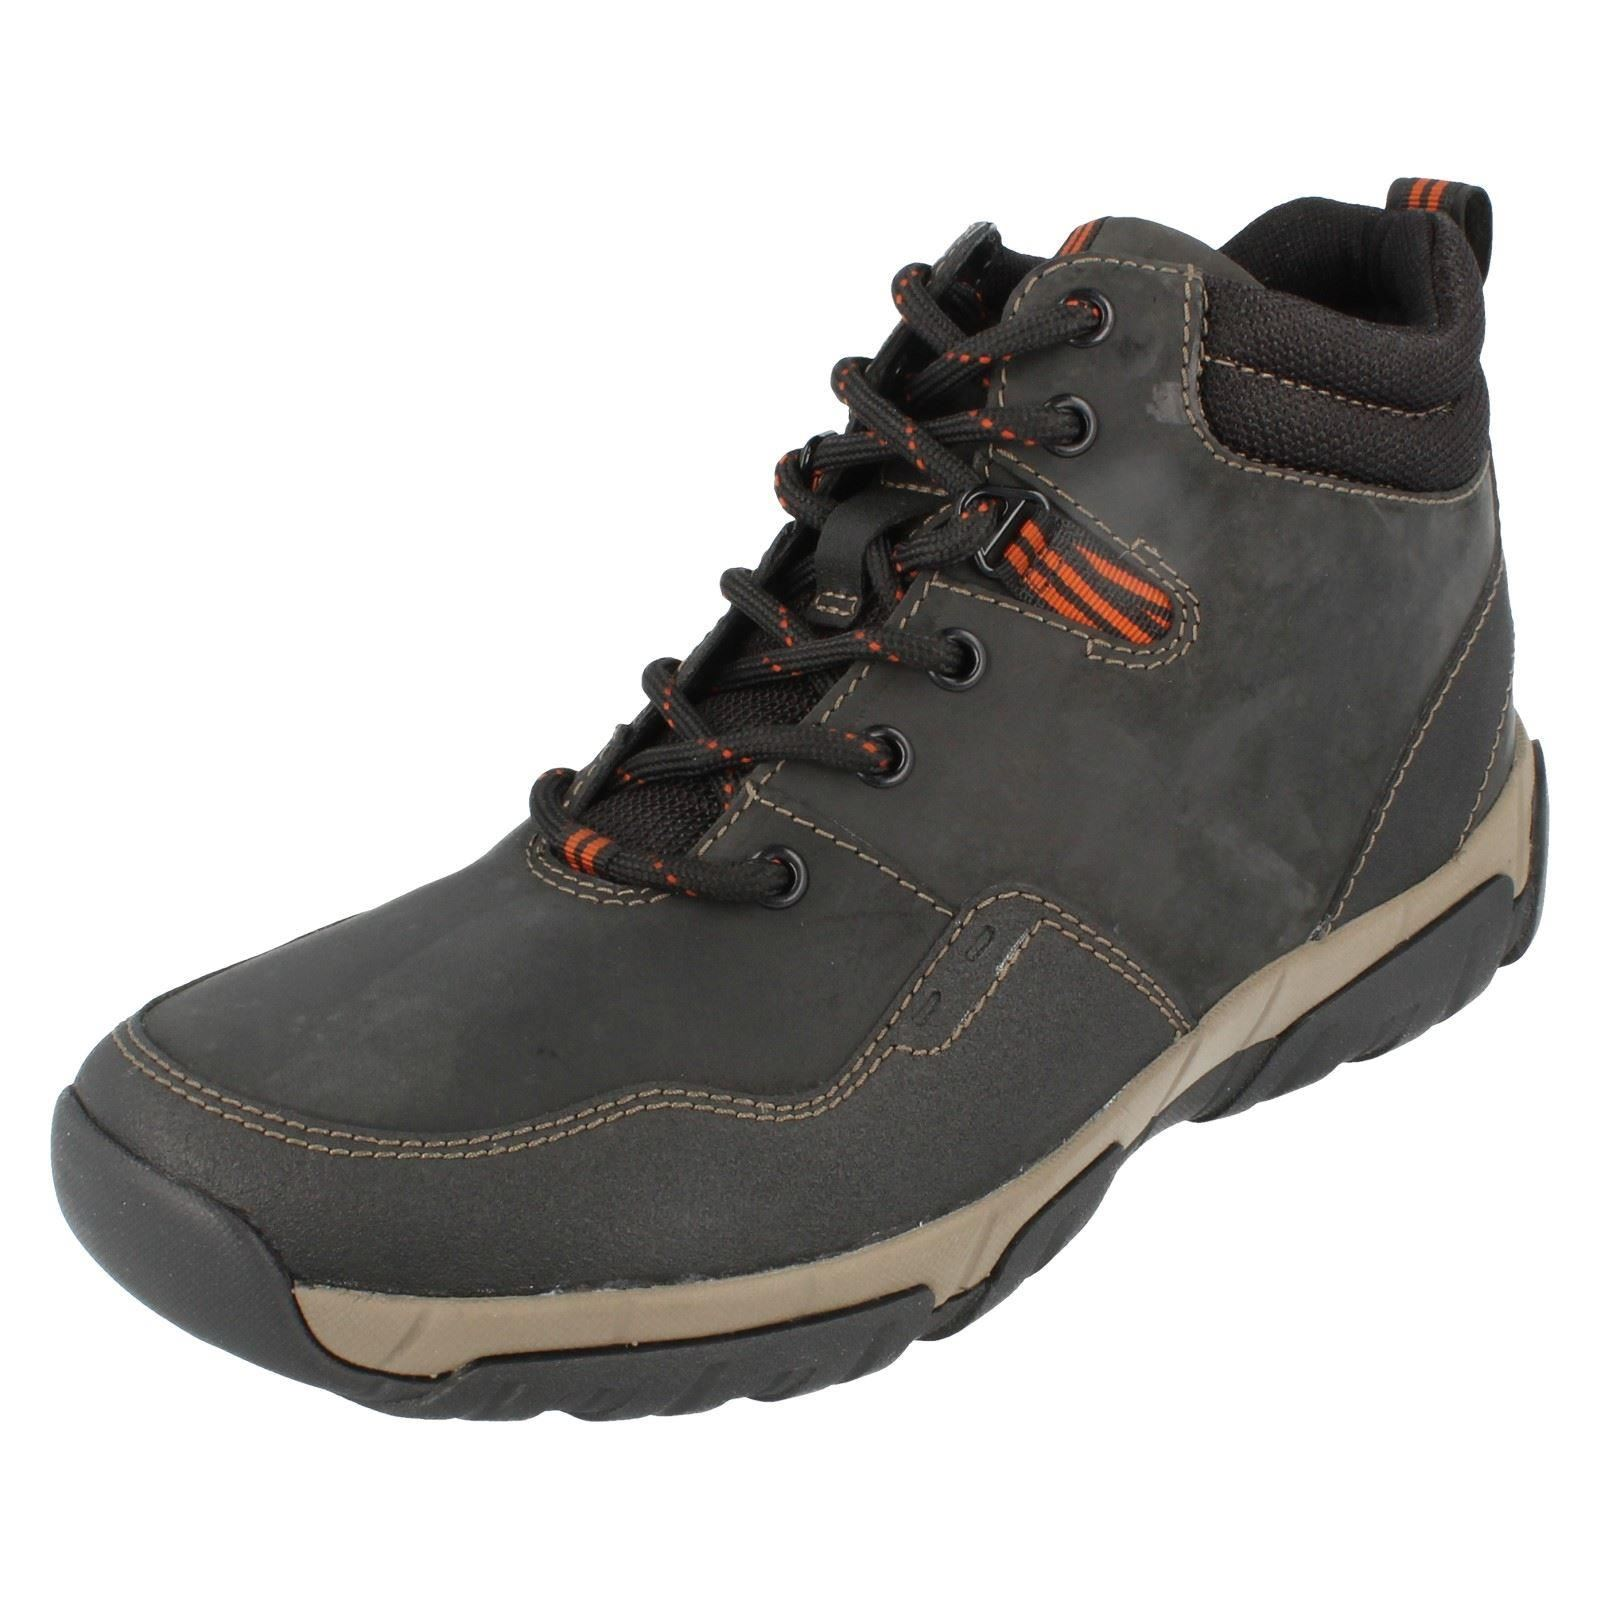 Mens Clarks Waterproof Boots The Style Walbeck Top ~ N